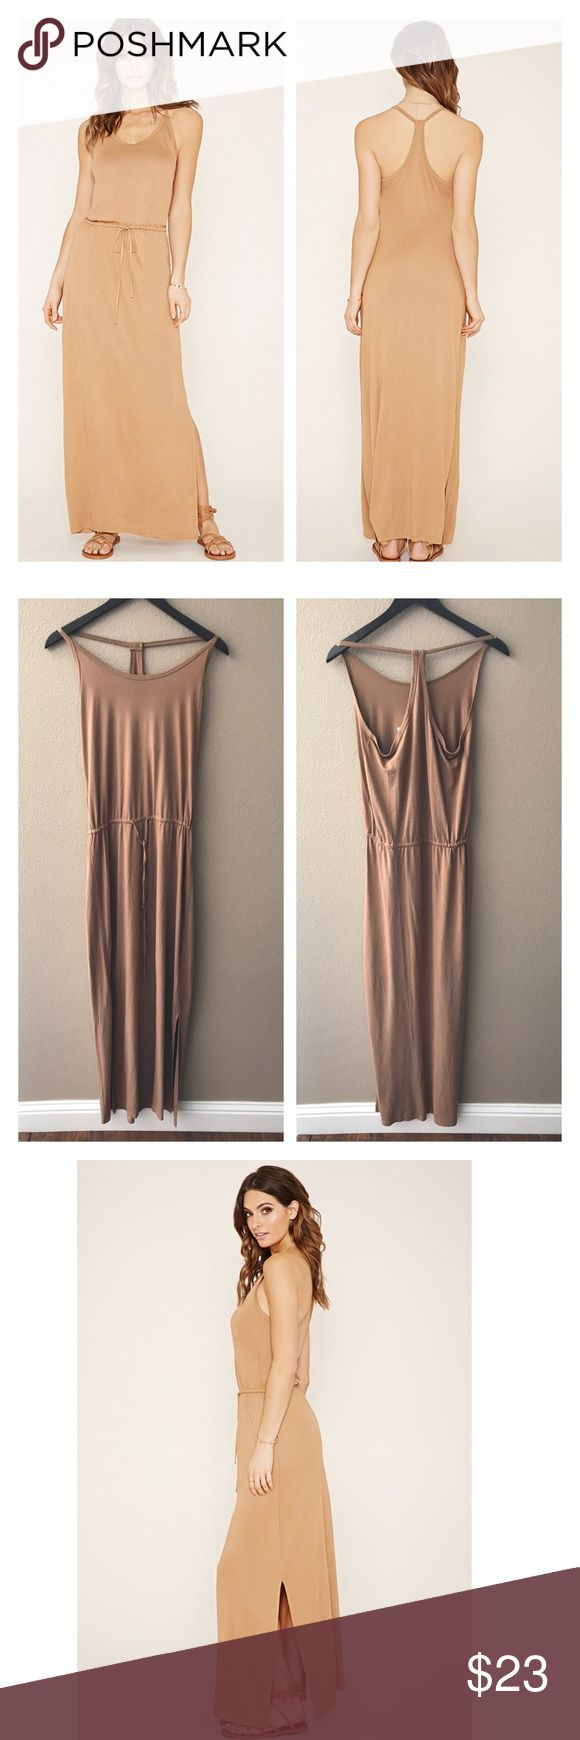 """Race back cami maxi dress Very soft jersey like quality material knit maxi dress features cami straps, a racerback, a round neckline, and an elasticized waist. Camel color. Runs like a size 8. From the contemporary line. Bust 38"""", waist 28-30"""", length 60"""". Rayon & spandex. NWT medium. Forever 21 Dresses Maxi"""